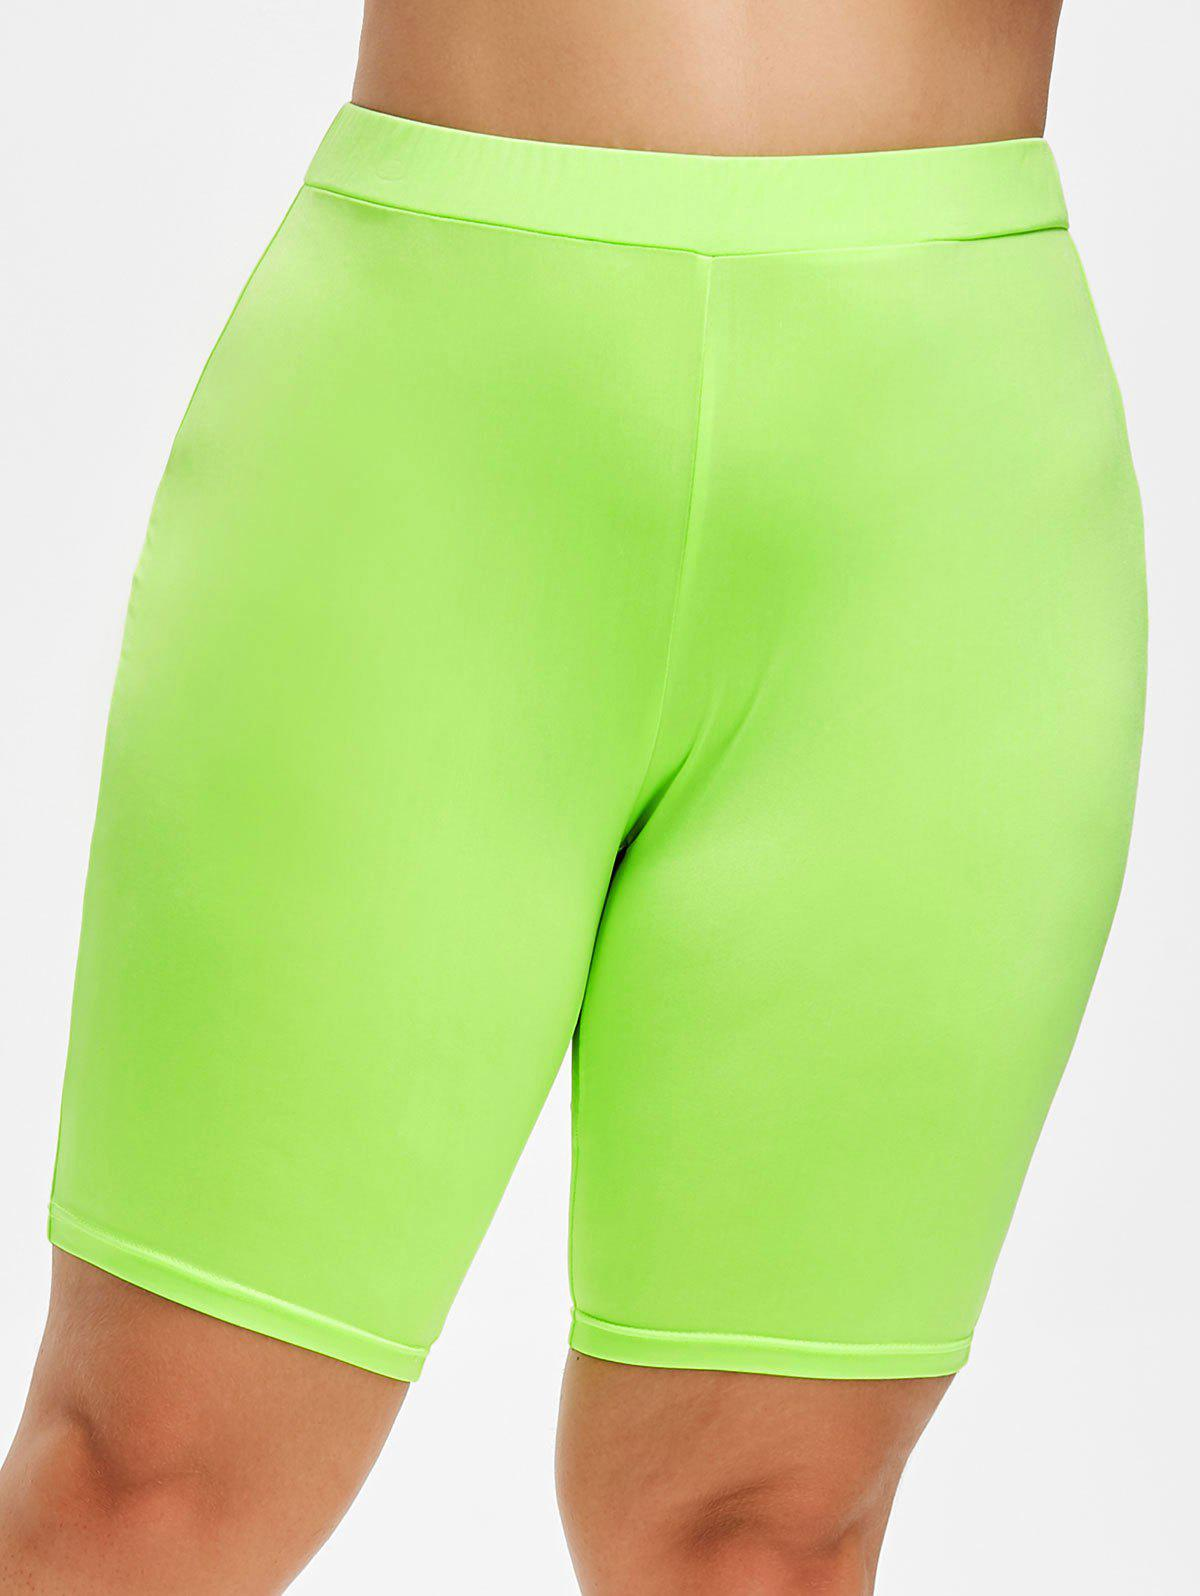 Best Rosegal Plus Size High Waist Lime Shorts